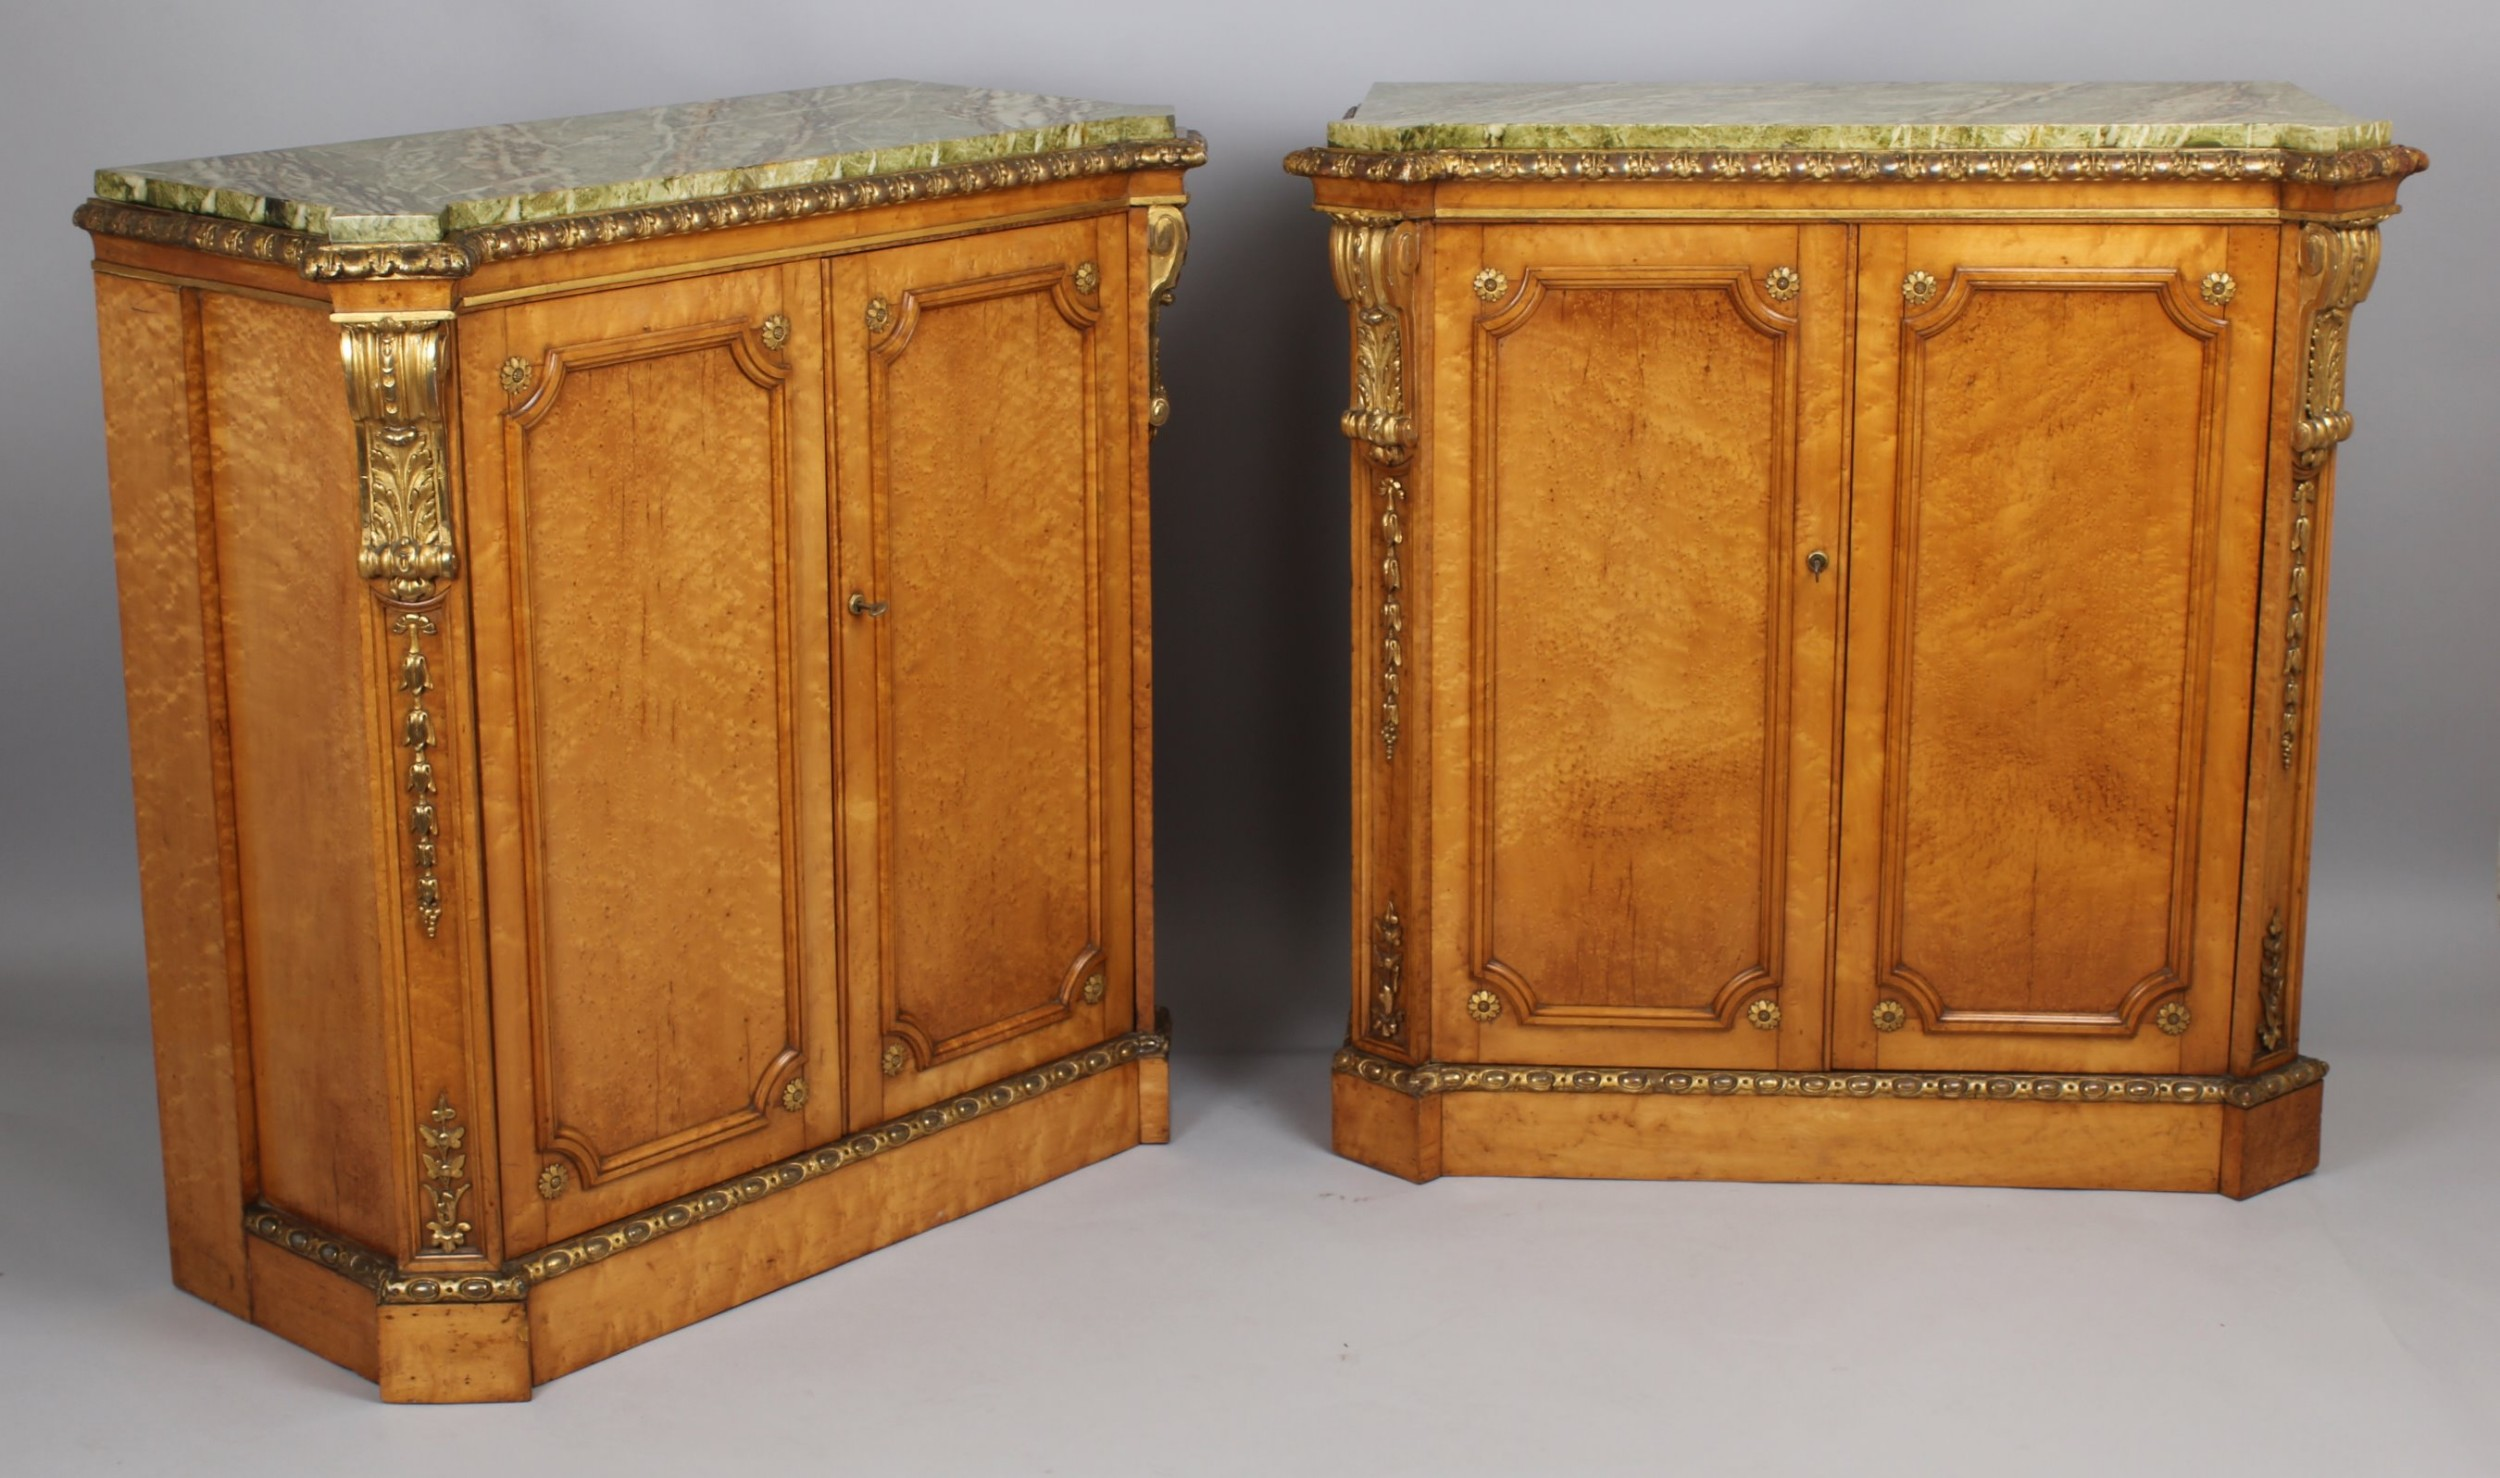 fine pair of midnineteenth century birds'eye maple and parcelgilt sidecabinets